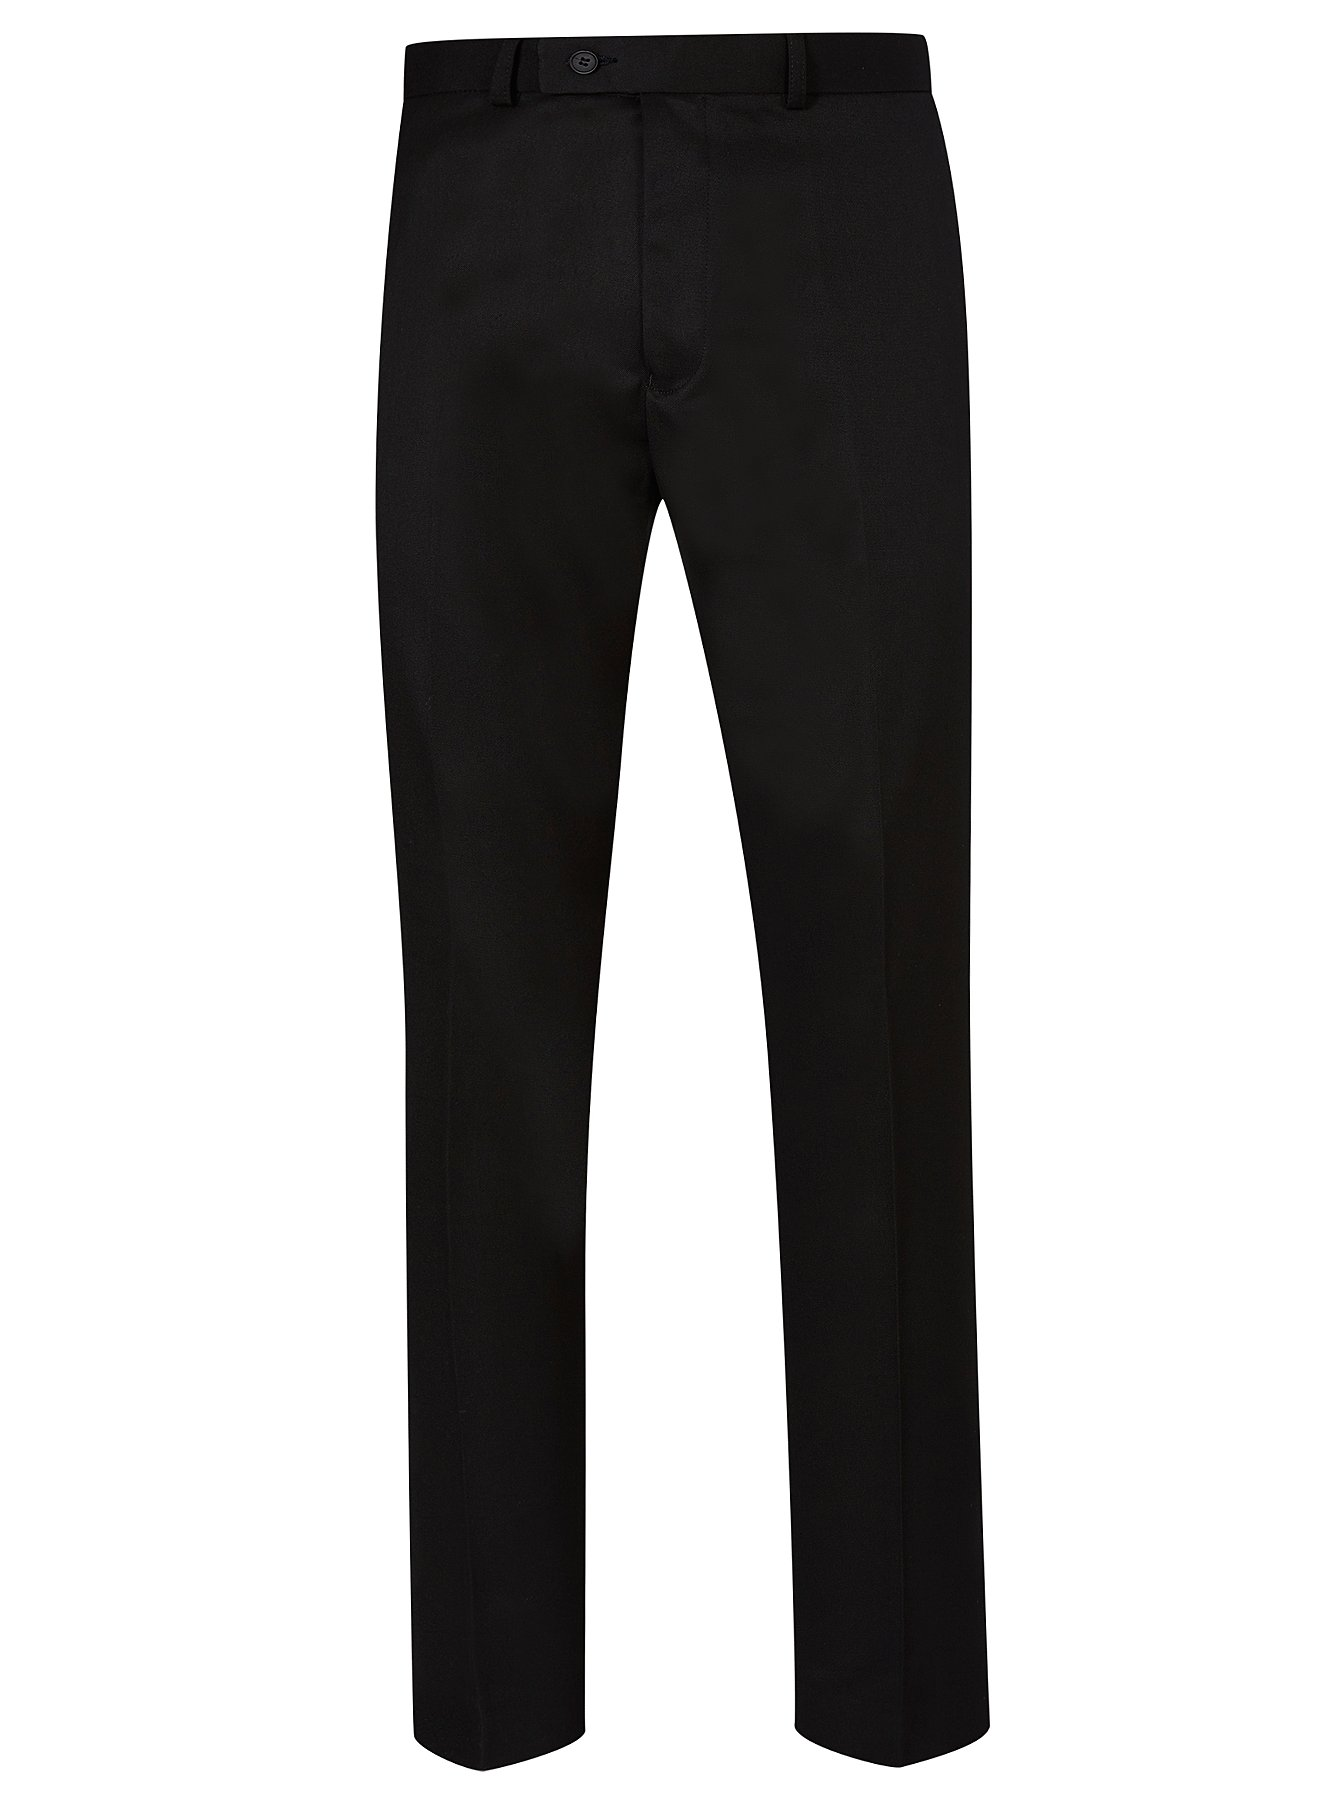 Slim Fit Trousers | Men | George at ASDA